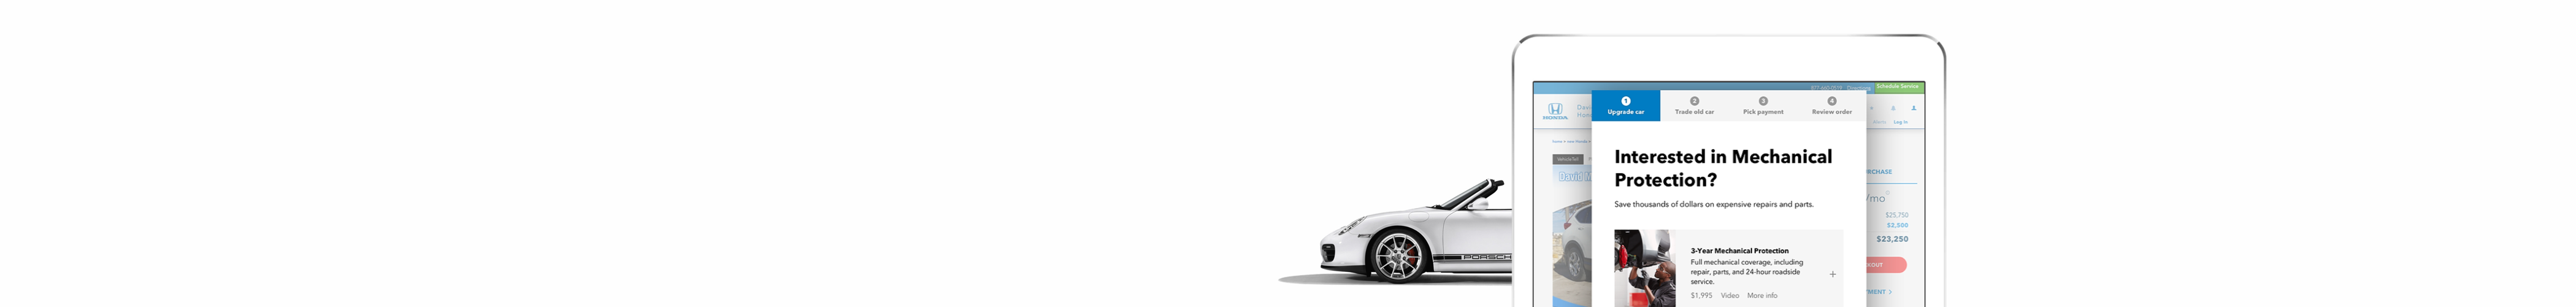 Blog Hero Porsche iPad Light Gray Background-1